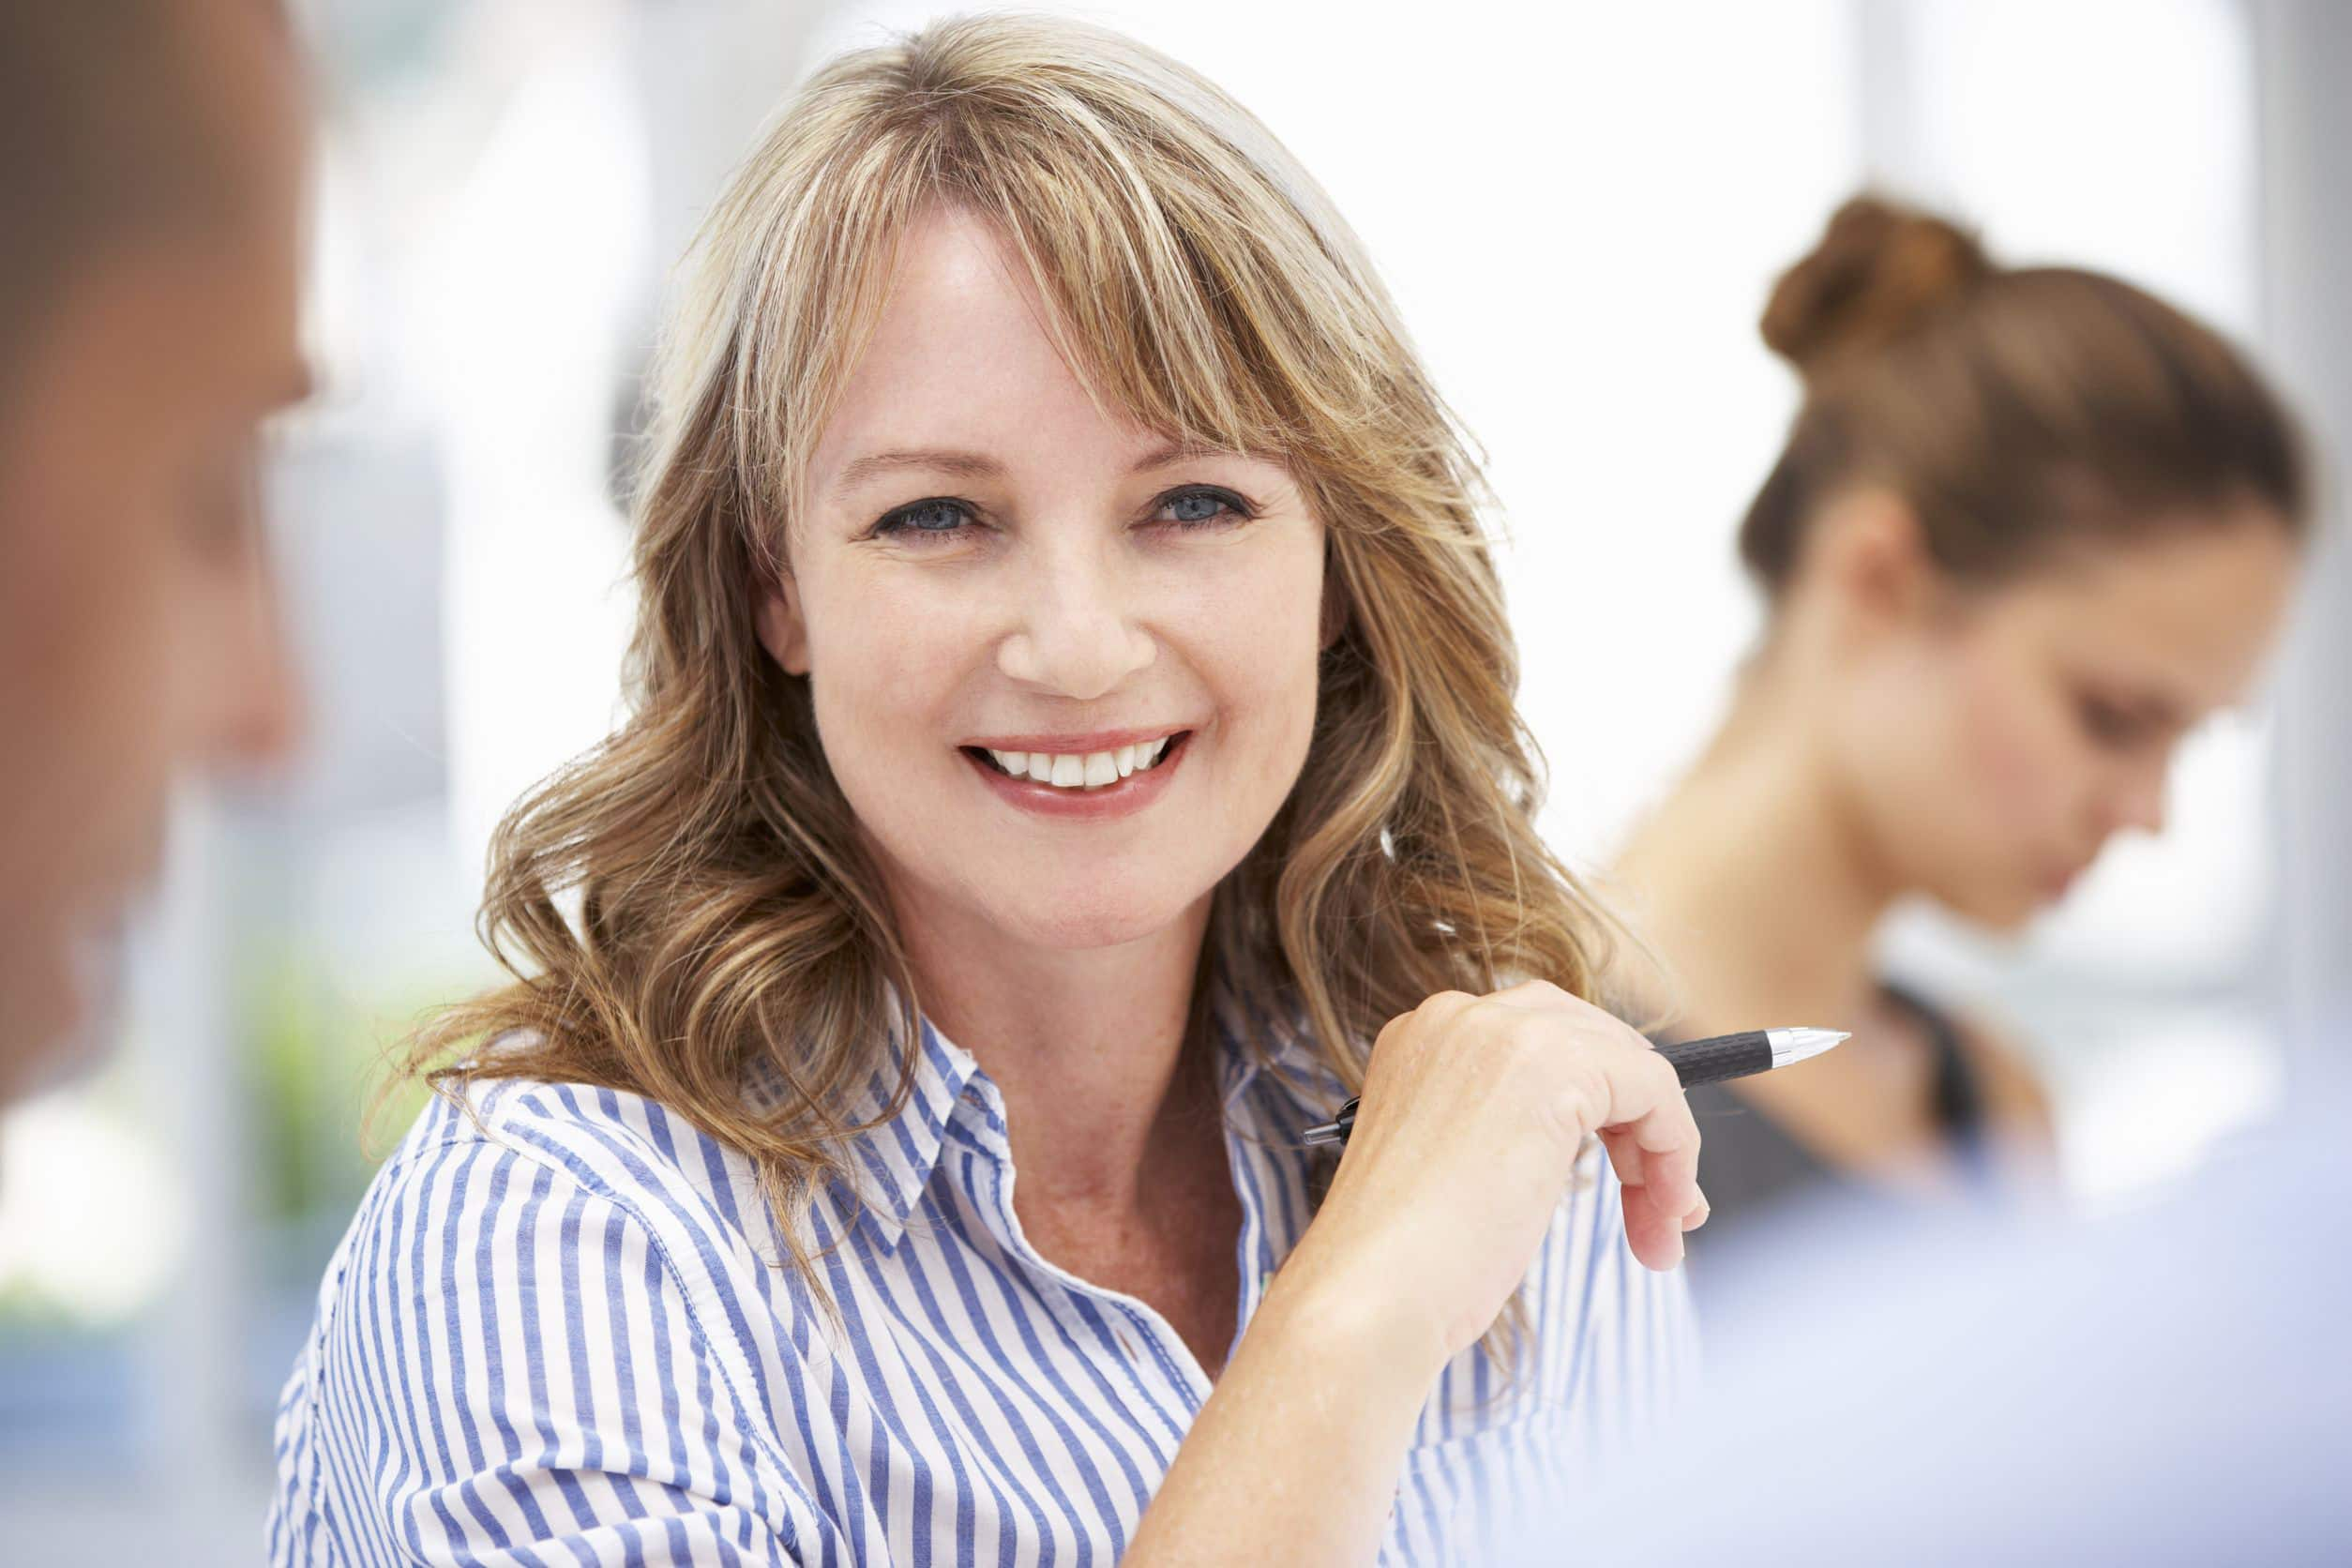 woman in business meeting smiling